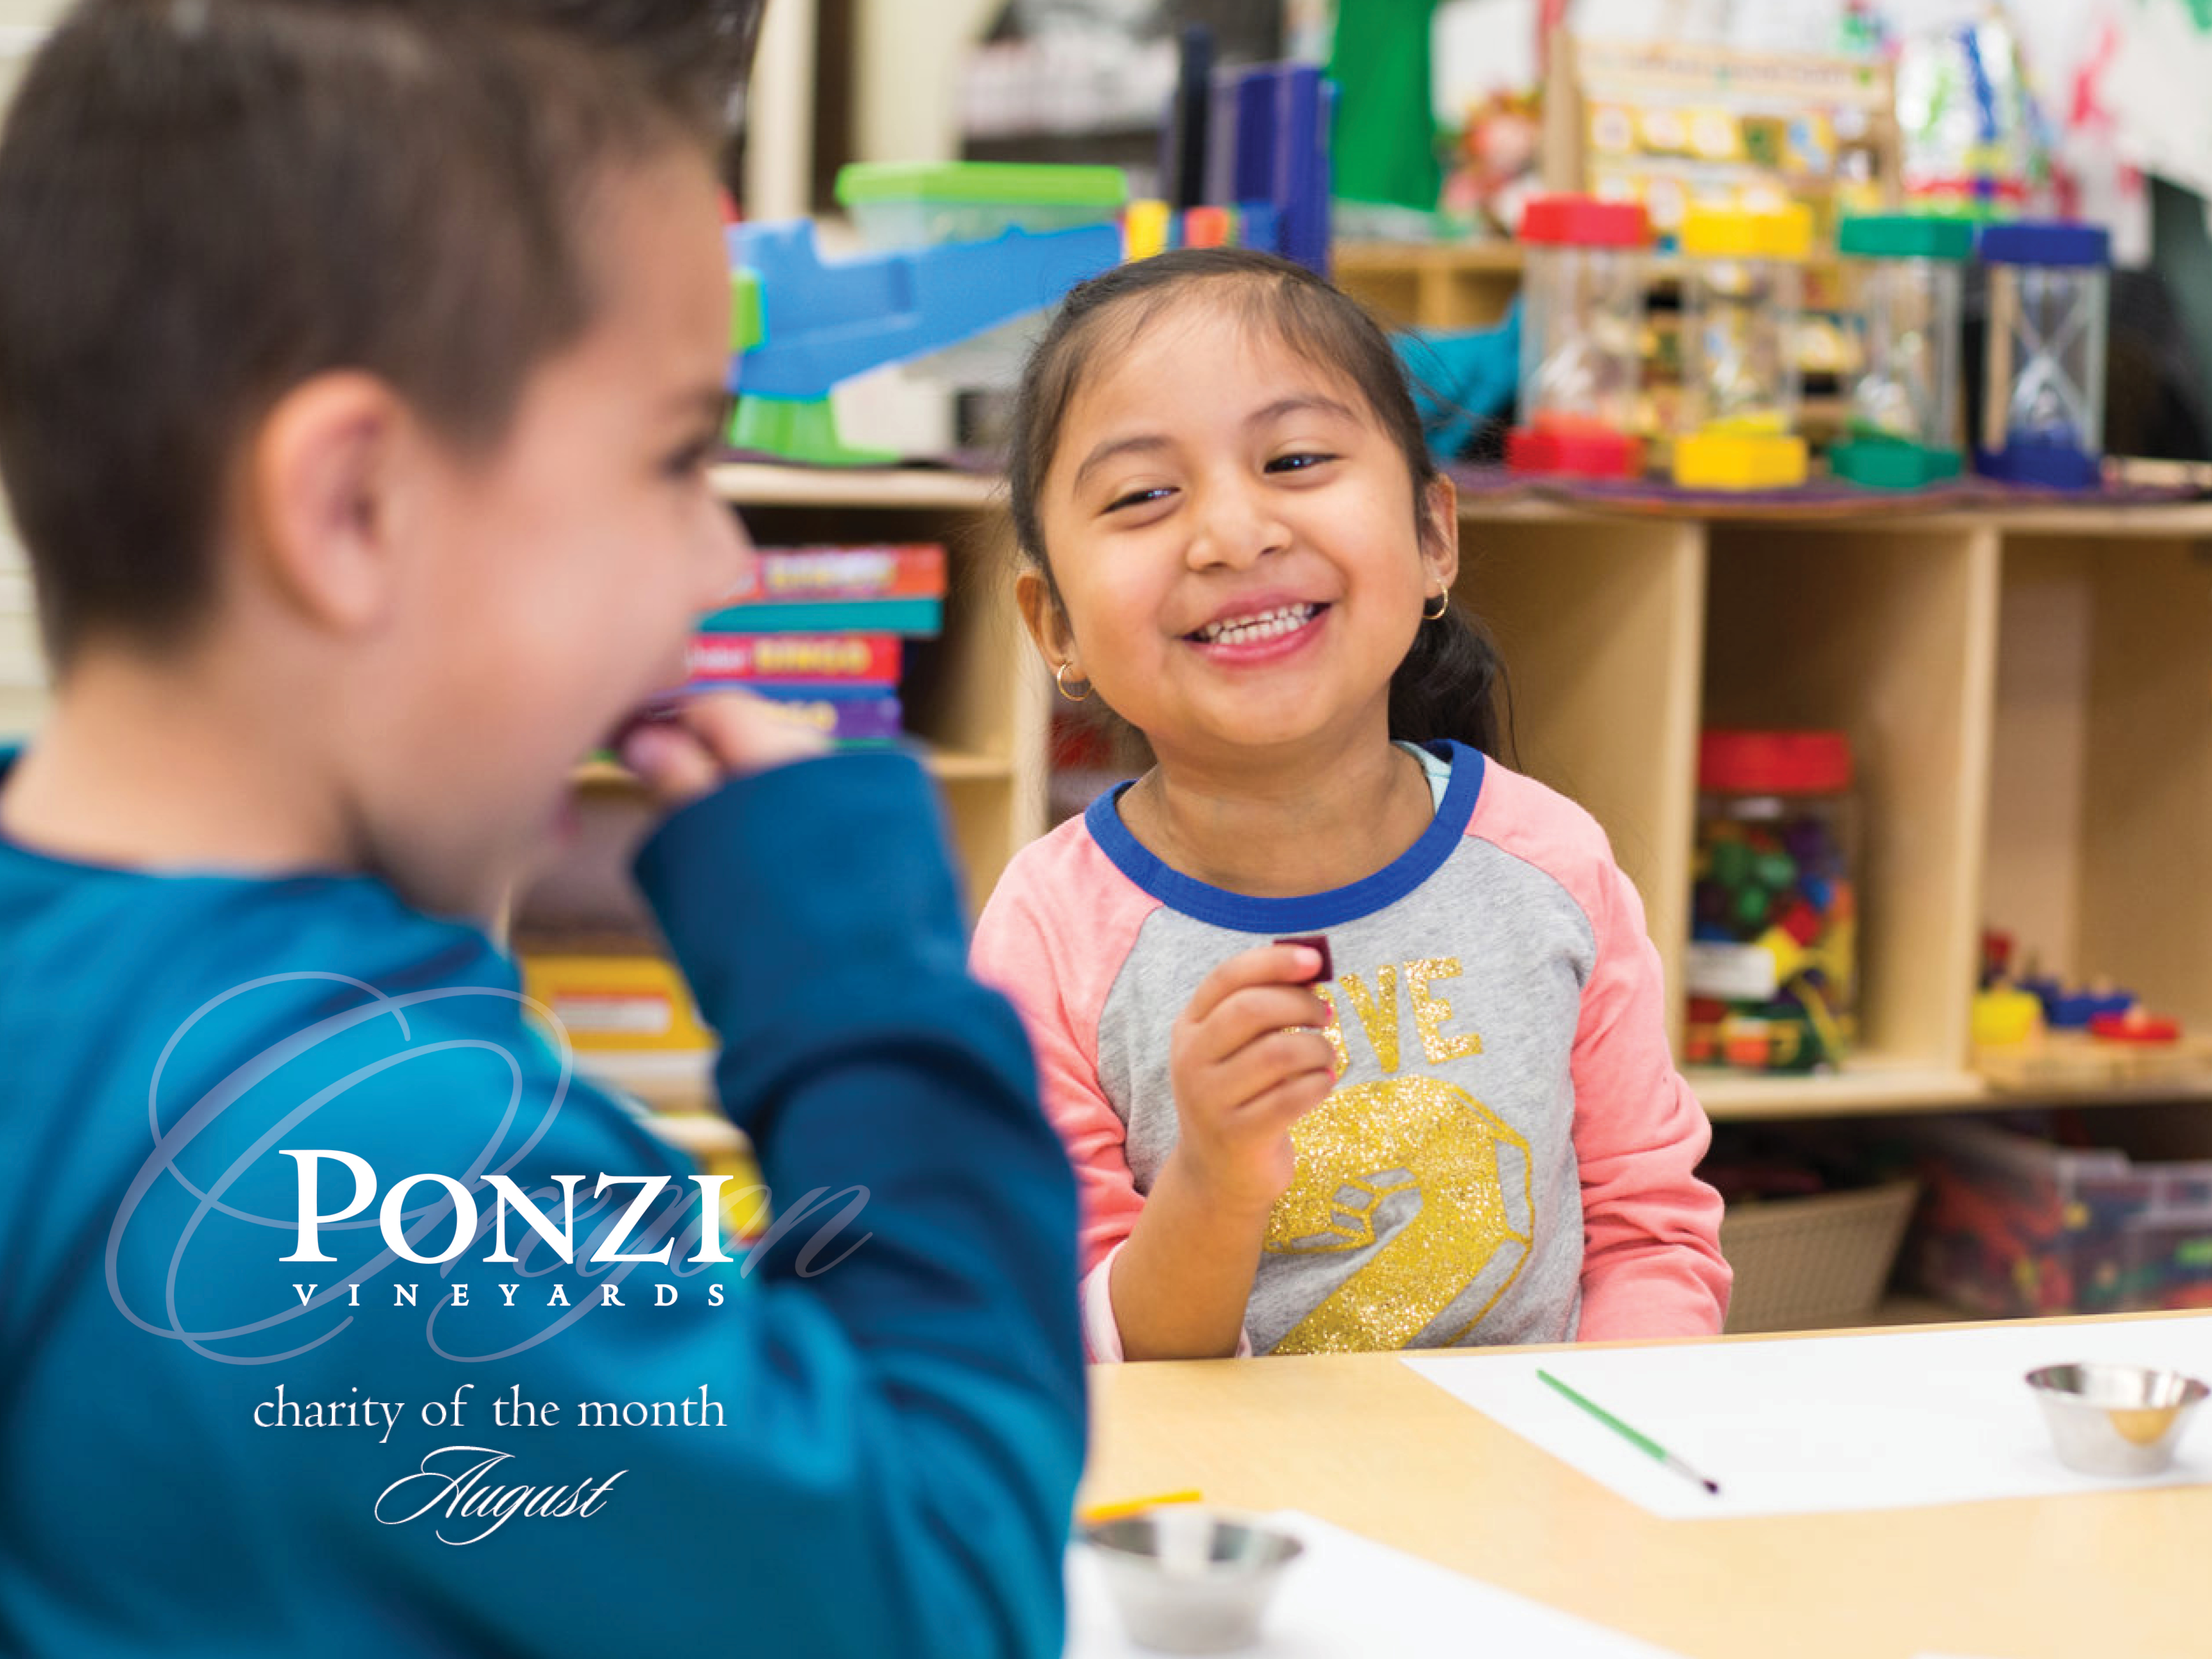 Adelante Mujeres is the August Charity of the Month at Ponzi Vineyards